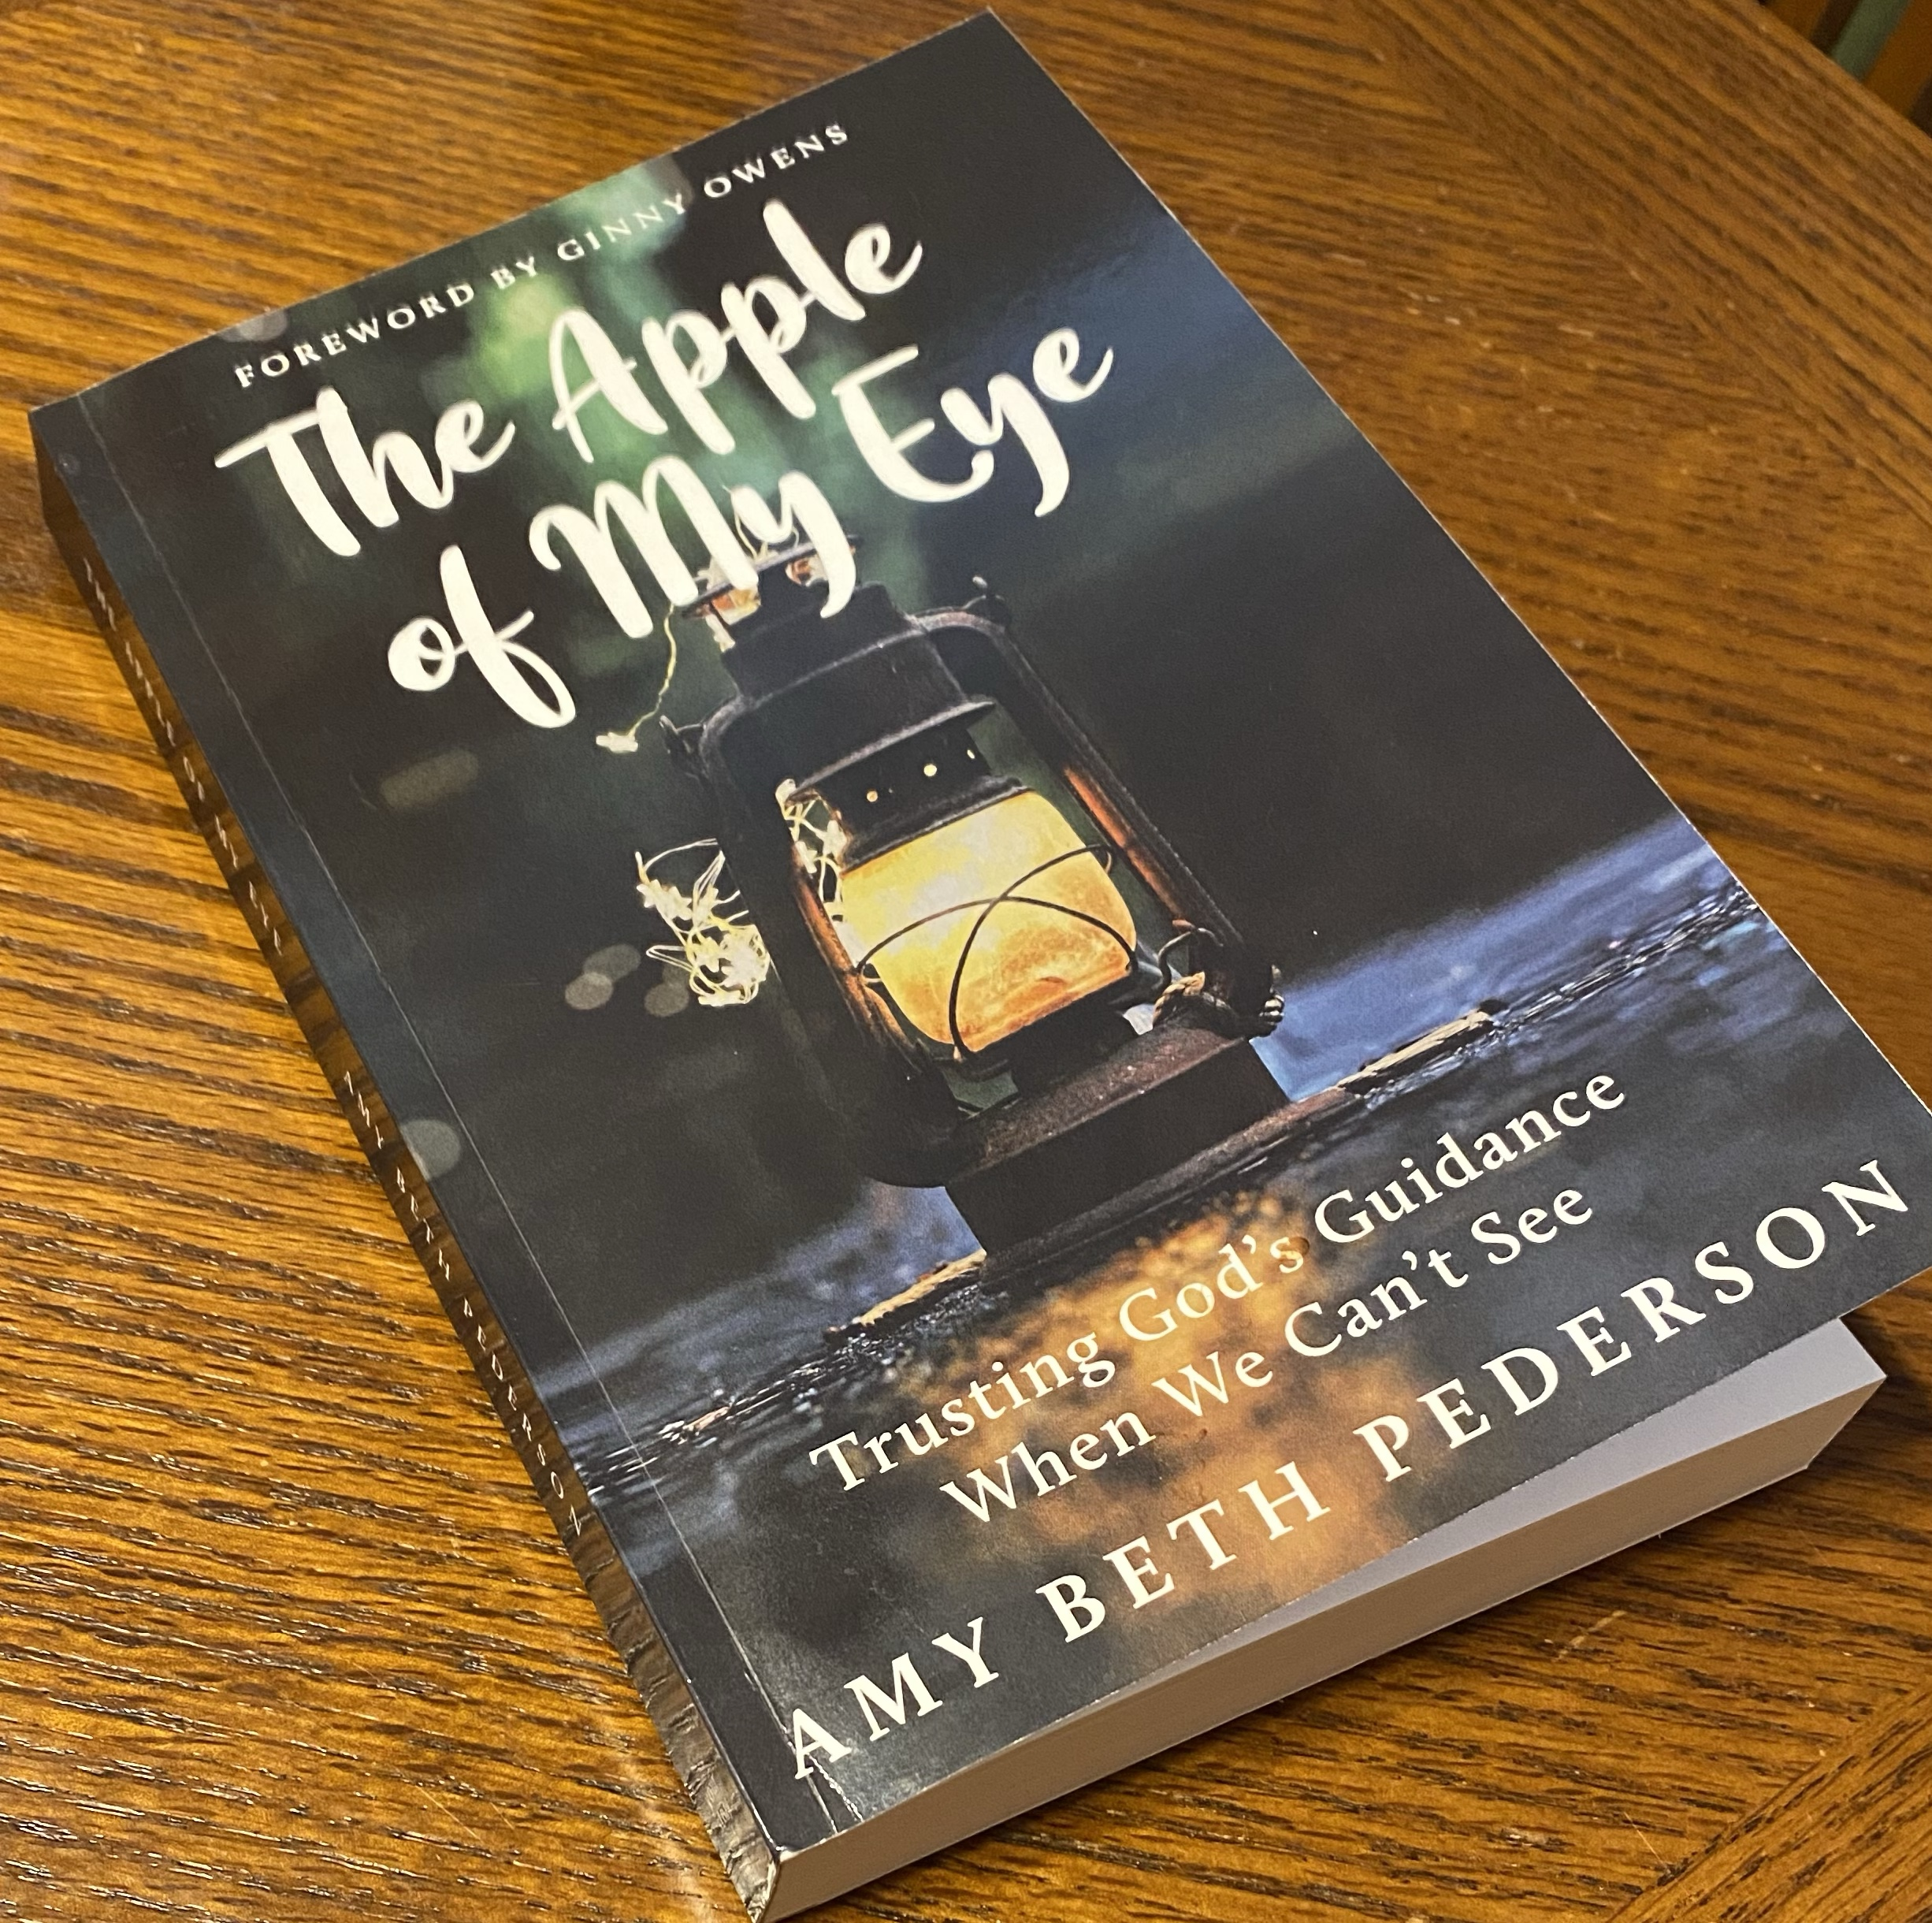 The Apple of My Eye by Amy Beth Petersen